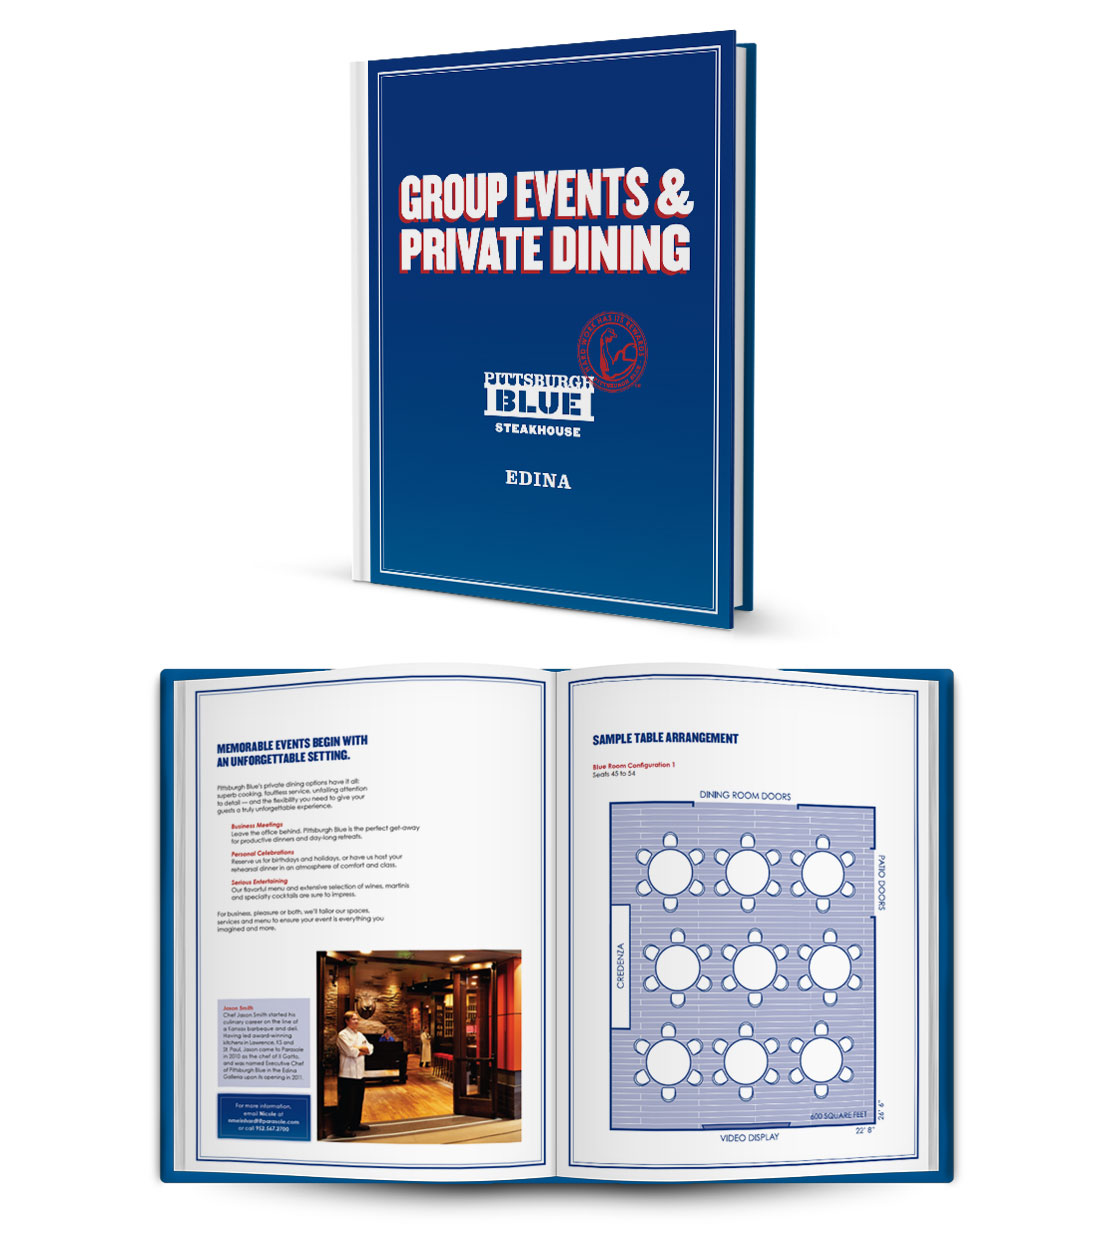 Pittsburgh Blue Private Dining Guide